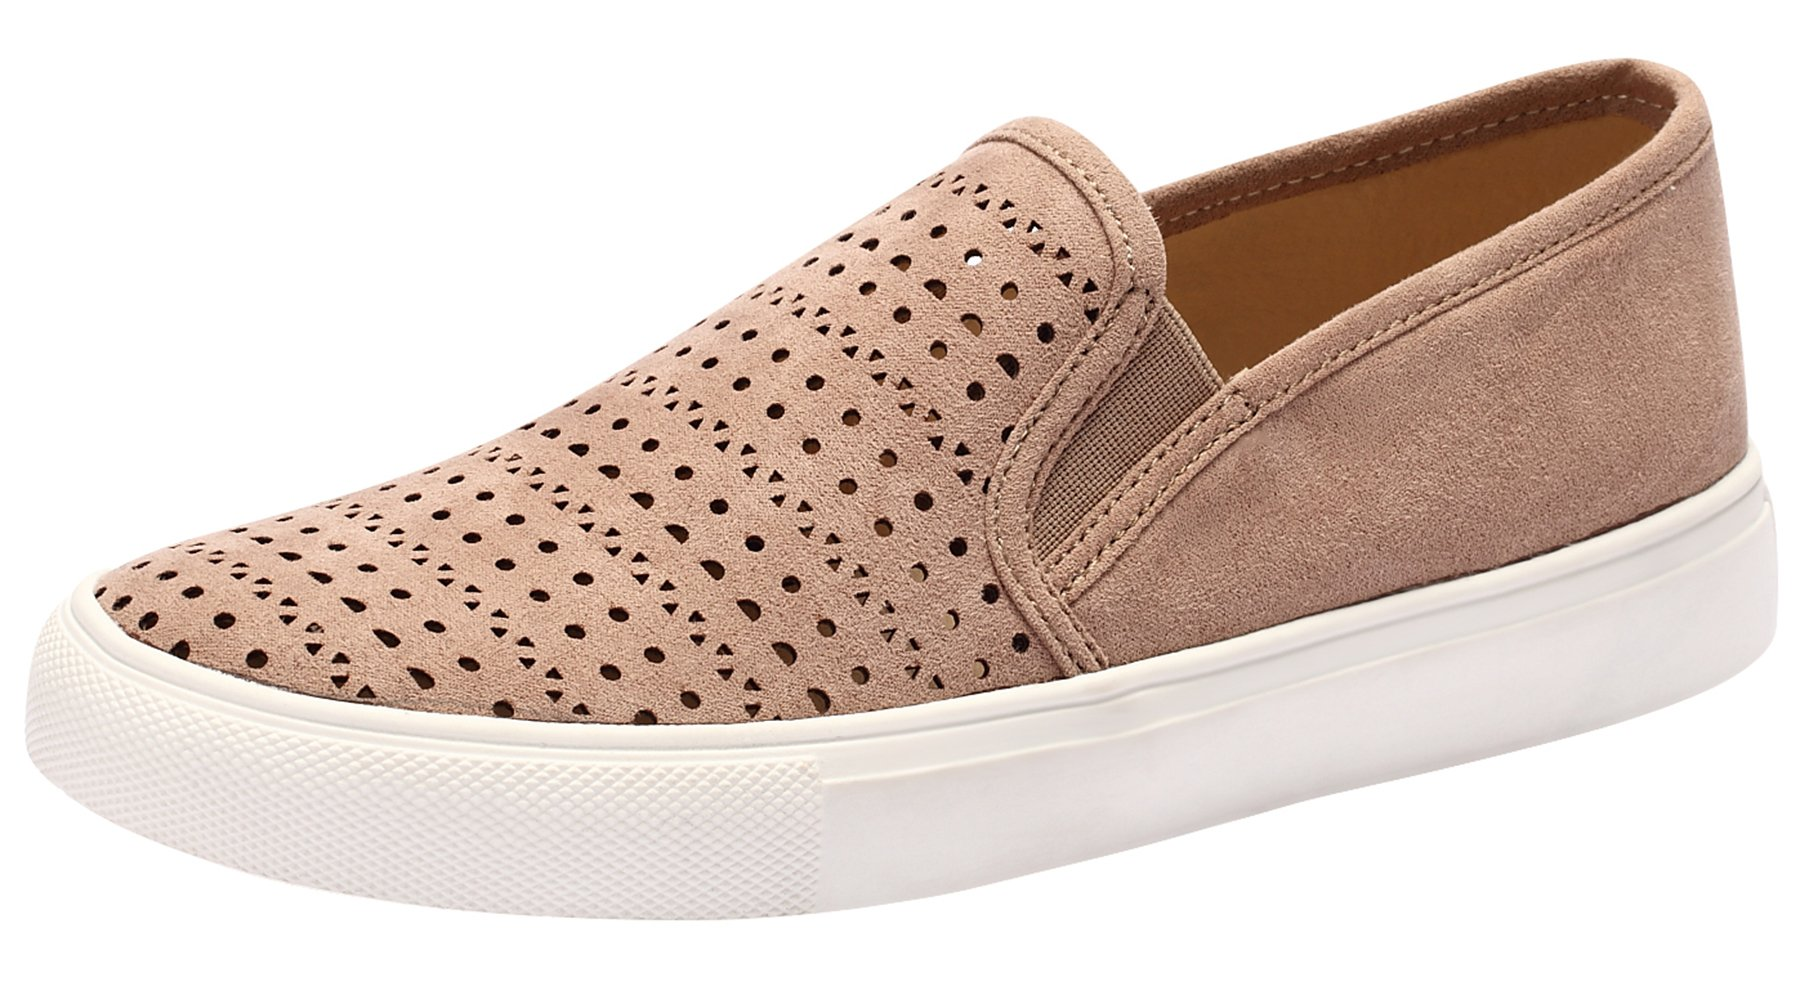 Sofree Women's Slip on Casual Loafers Fashion Sneakers (8, Taupe)